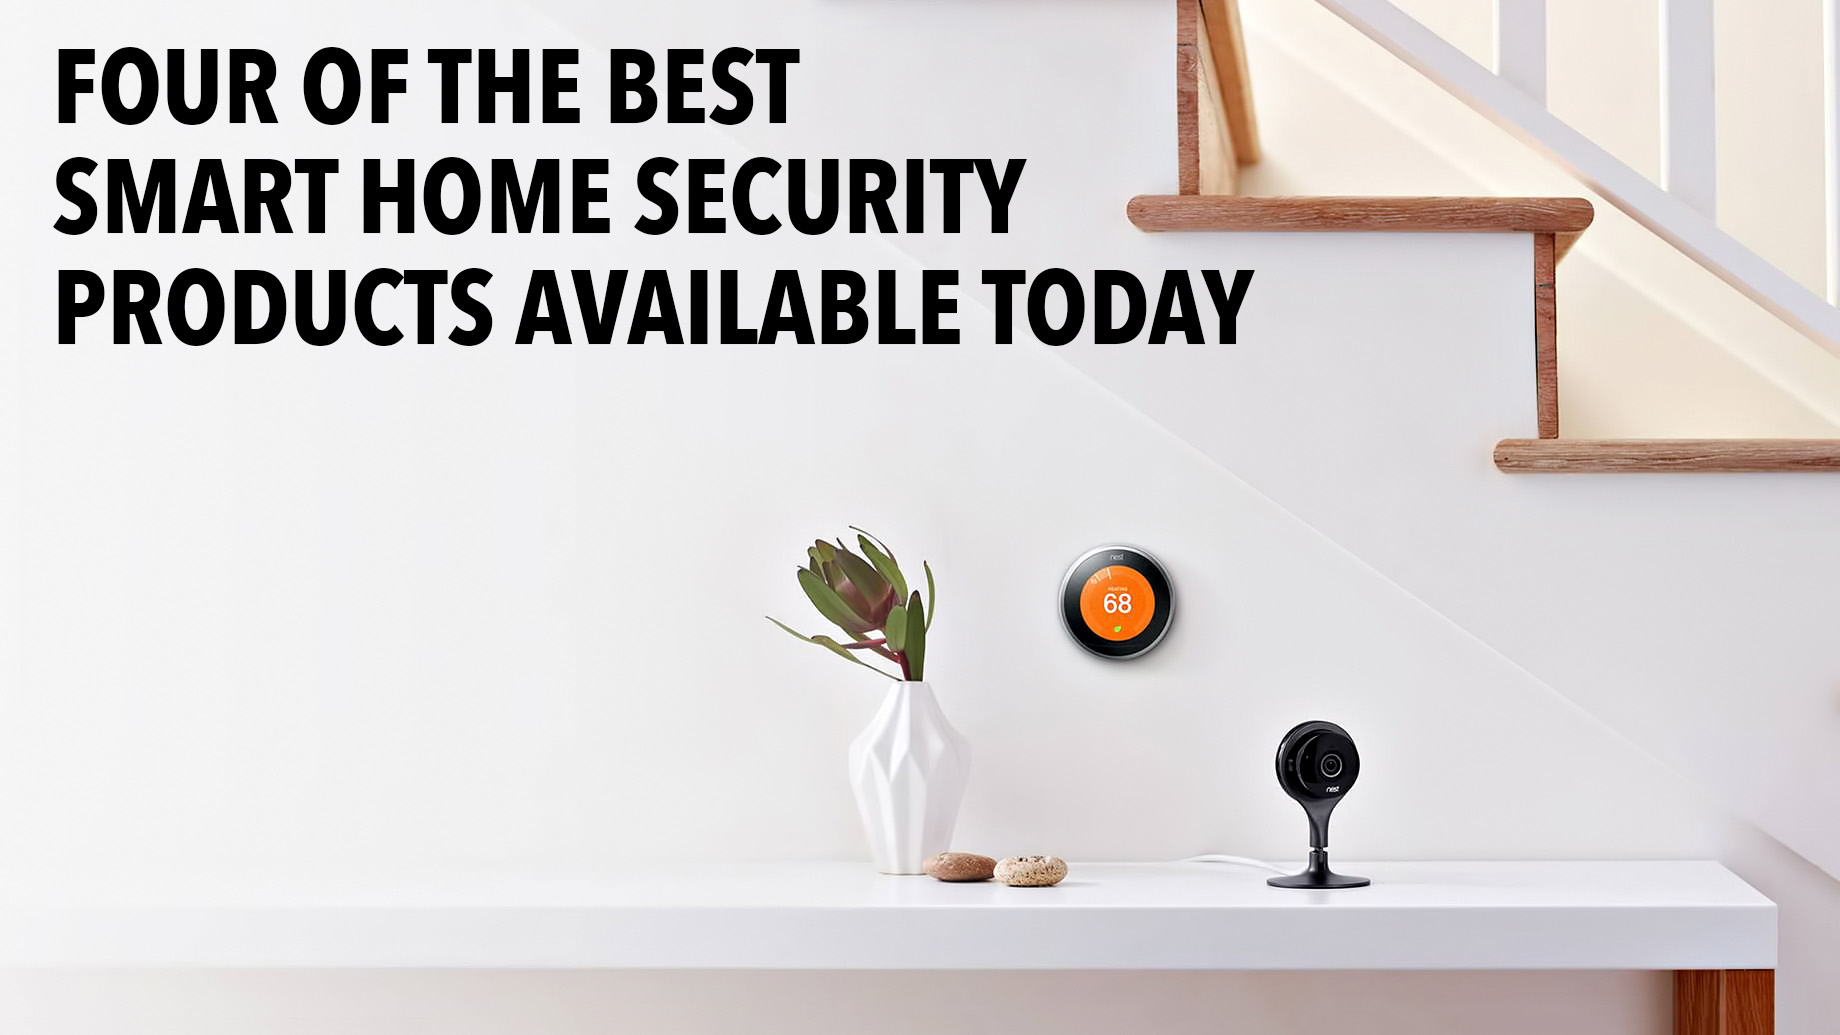 Four of the Best Smart Home Security Products Available Today